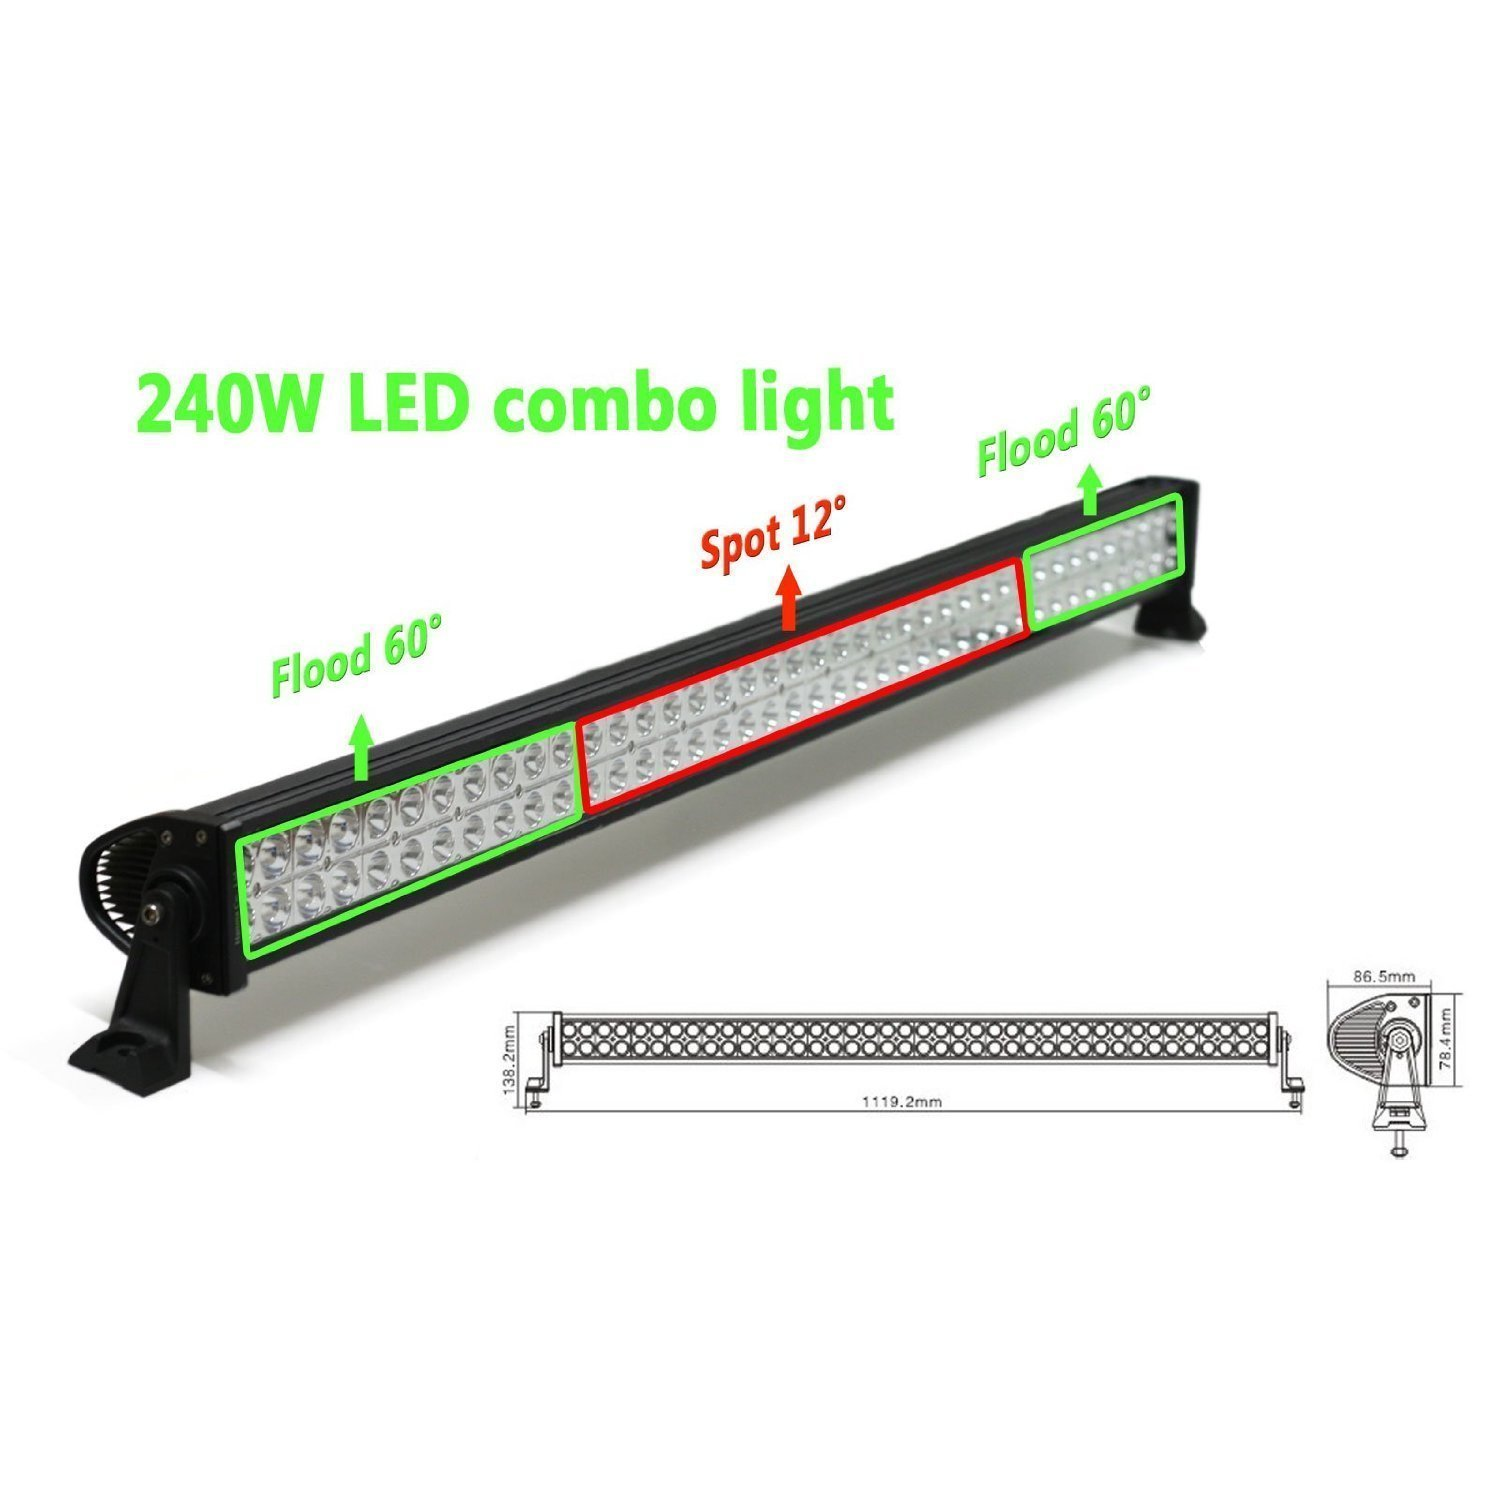 "Orion 42"" Off-Road Extra LED Light Bar Cree - 240W Flood/Spot Combo Beam"